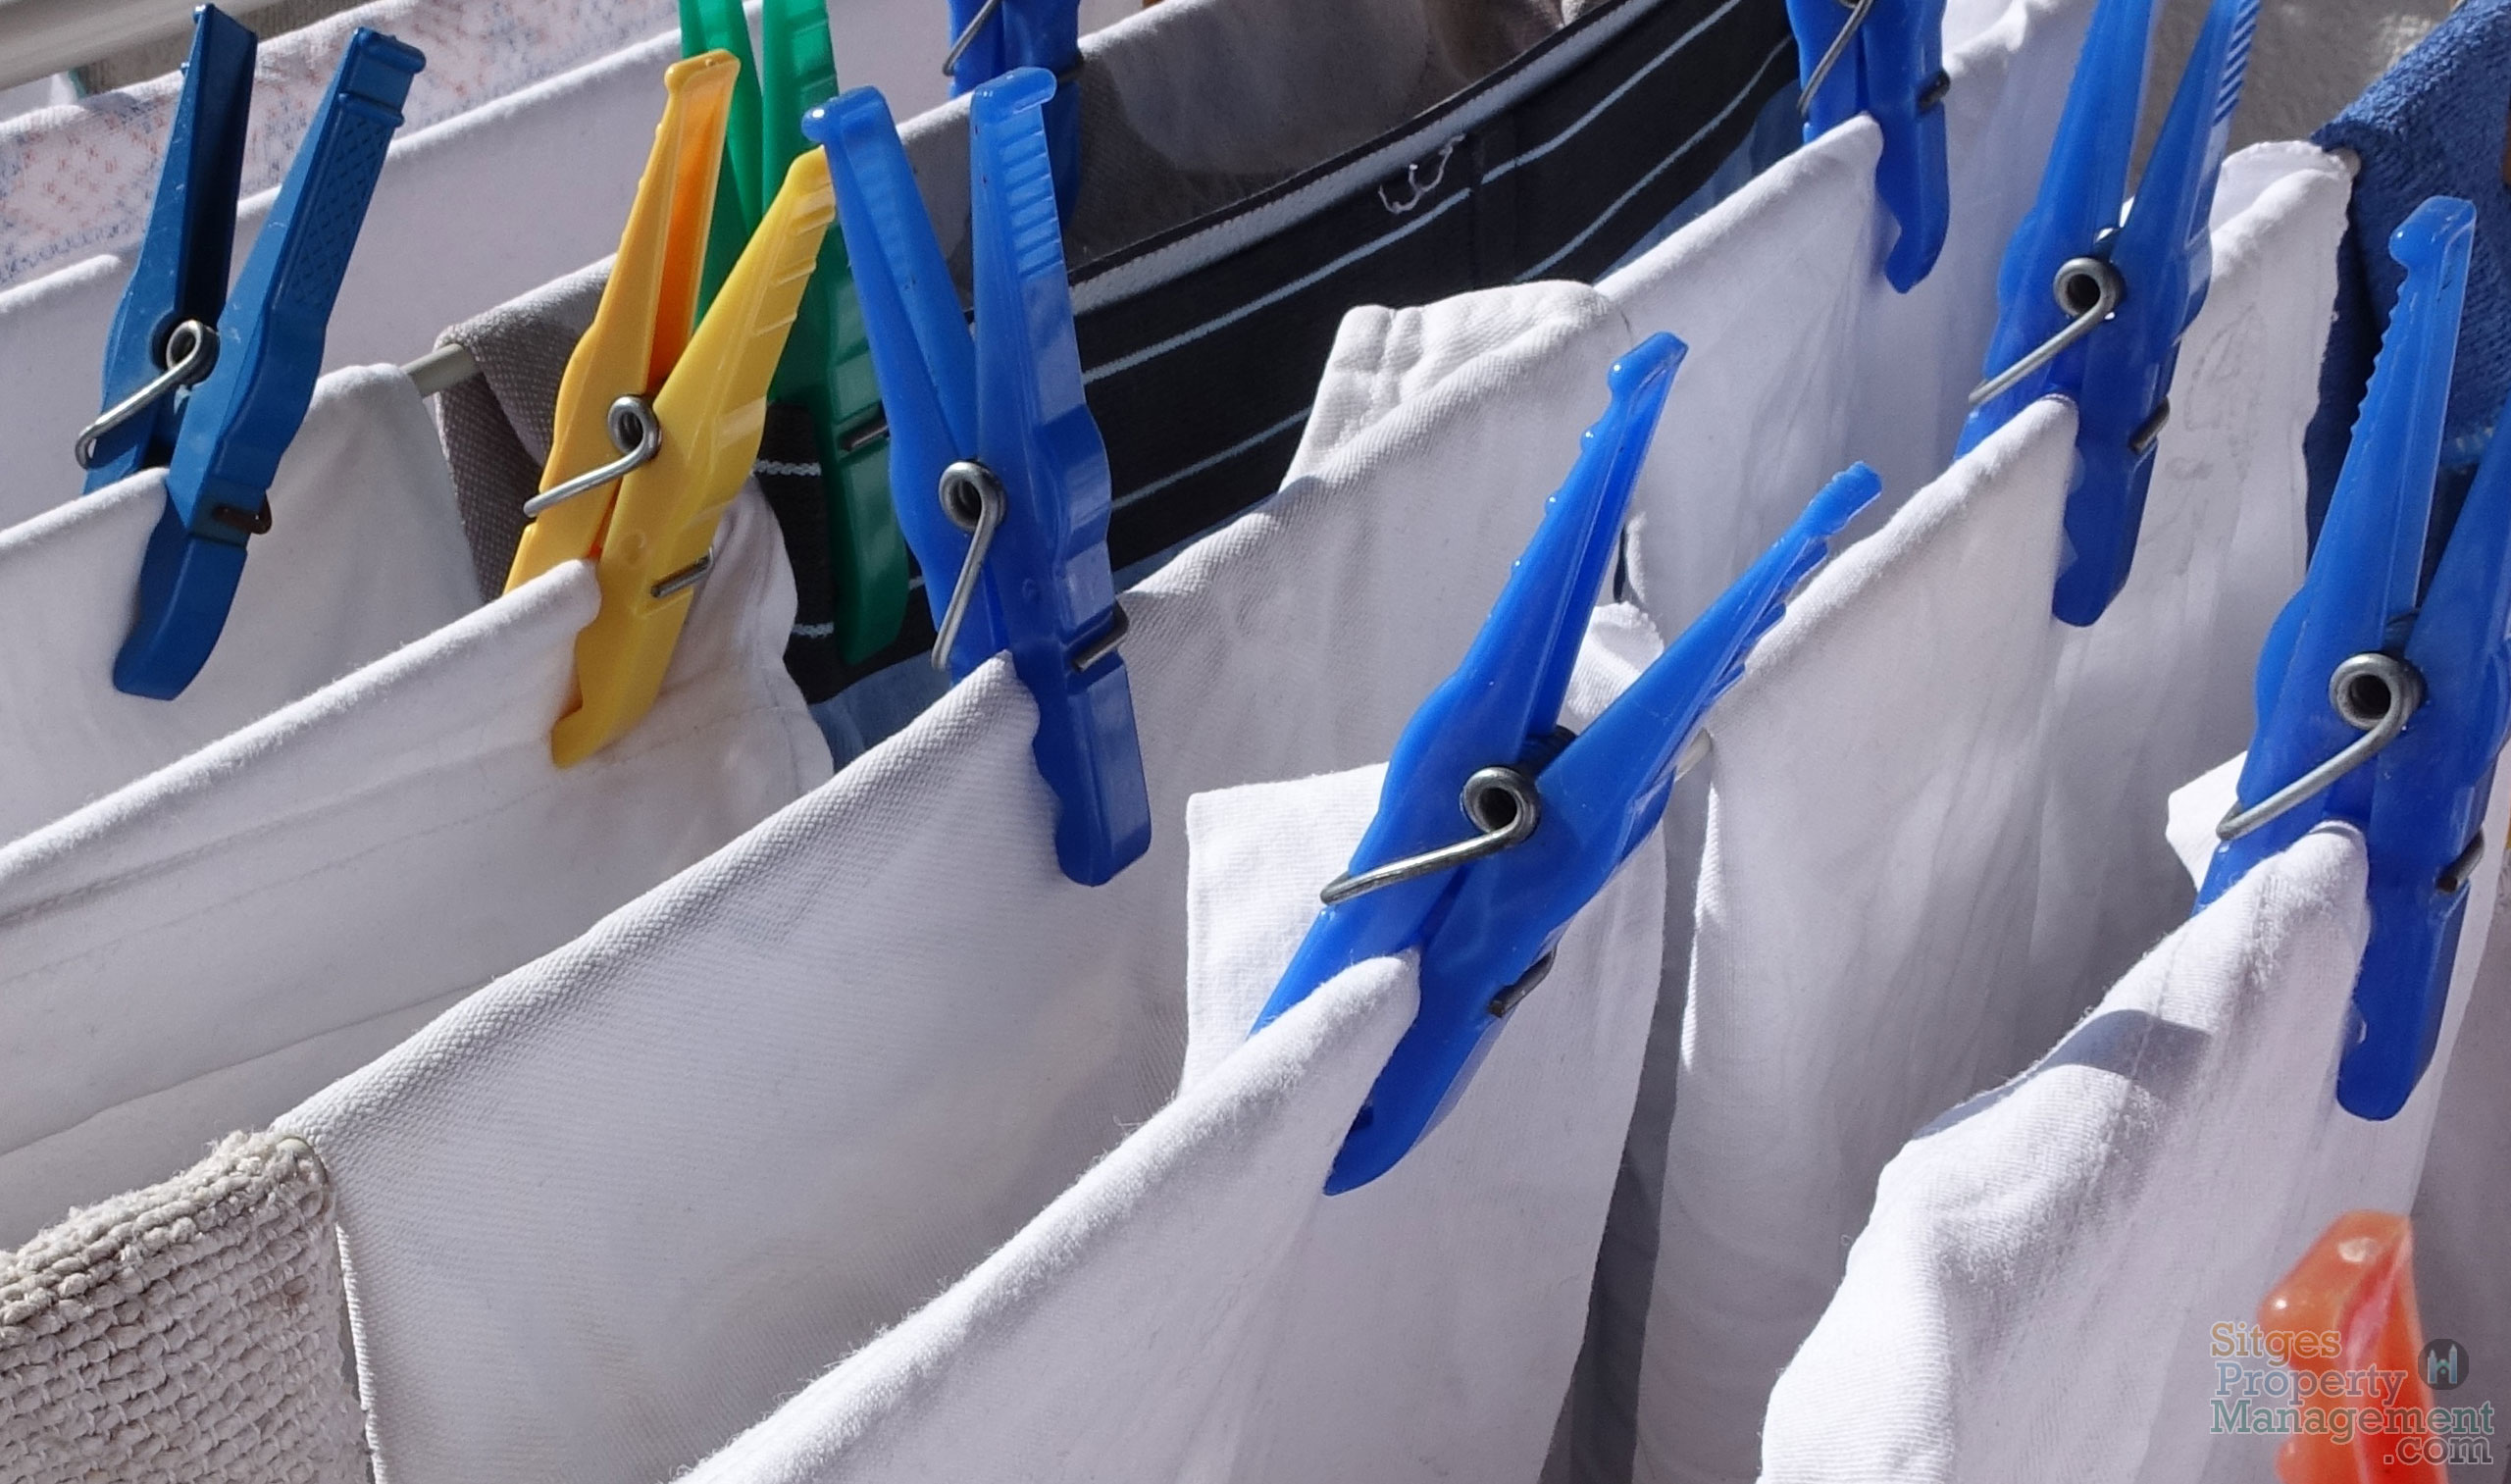 Laundry, Cleaning & Turnaround Service - Sitges